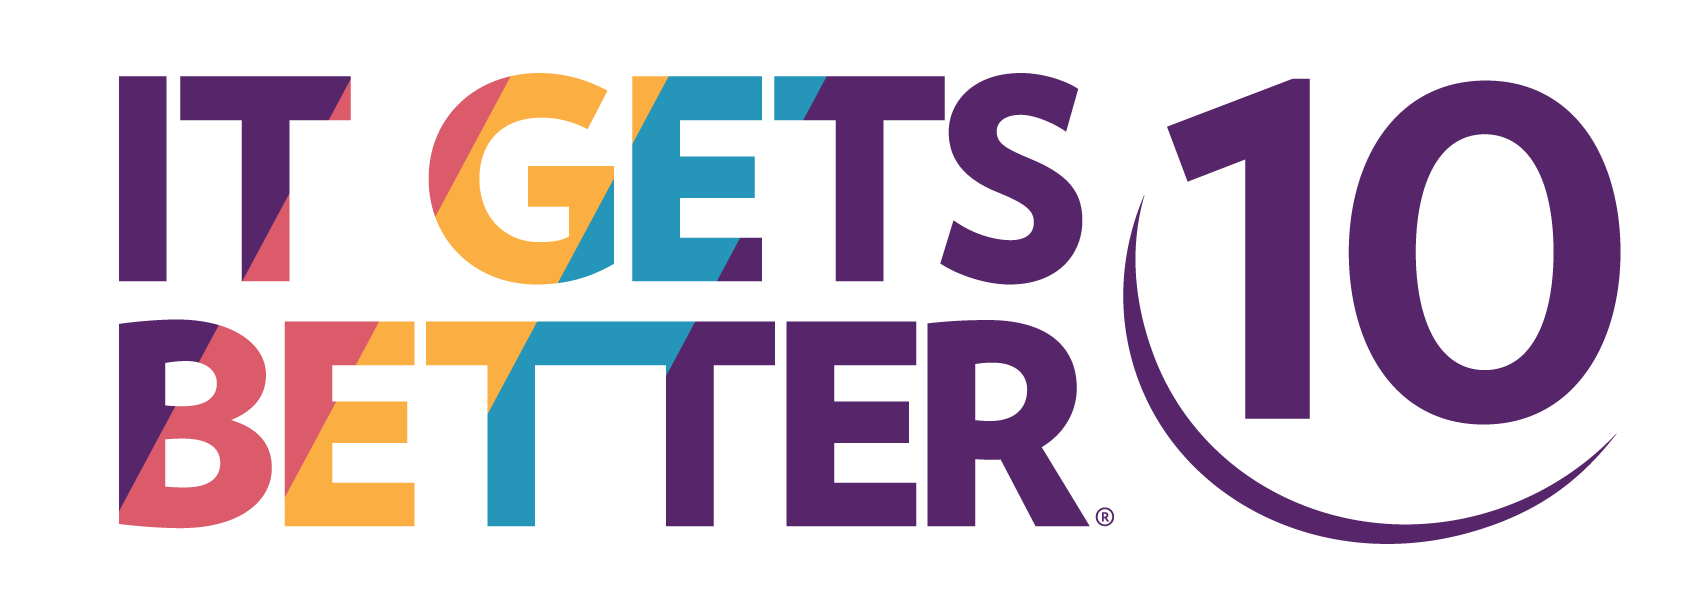 It Gets Better 10th Anniversary Logo